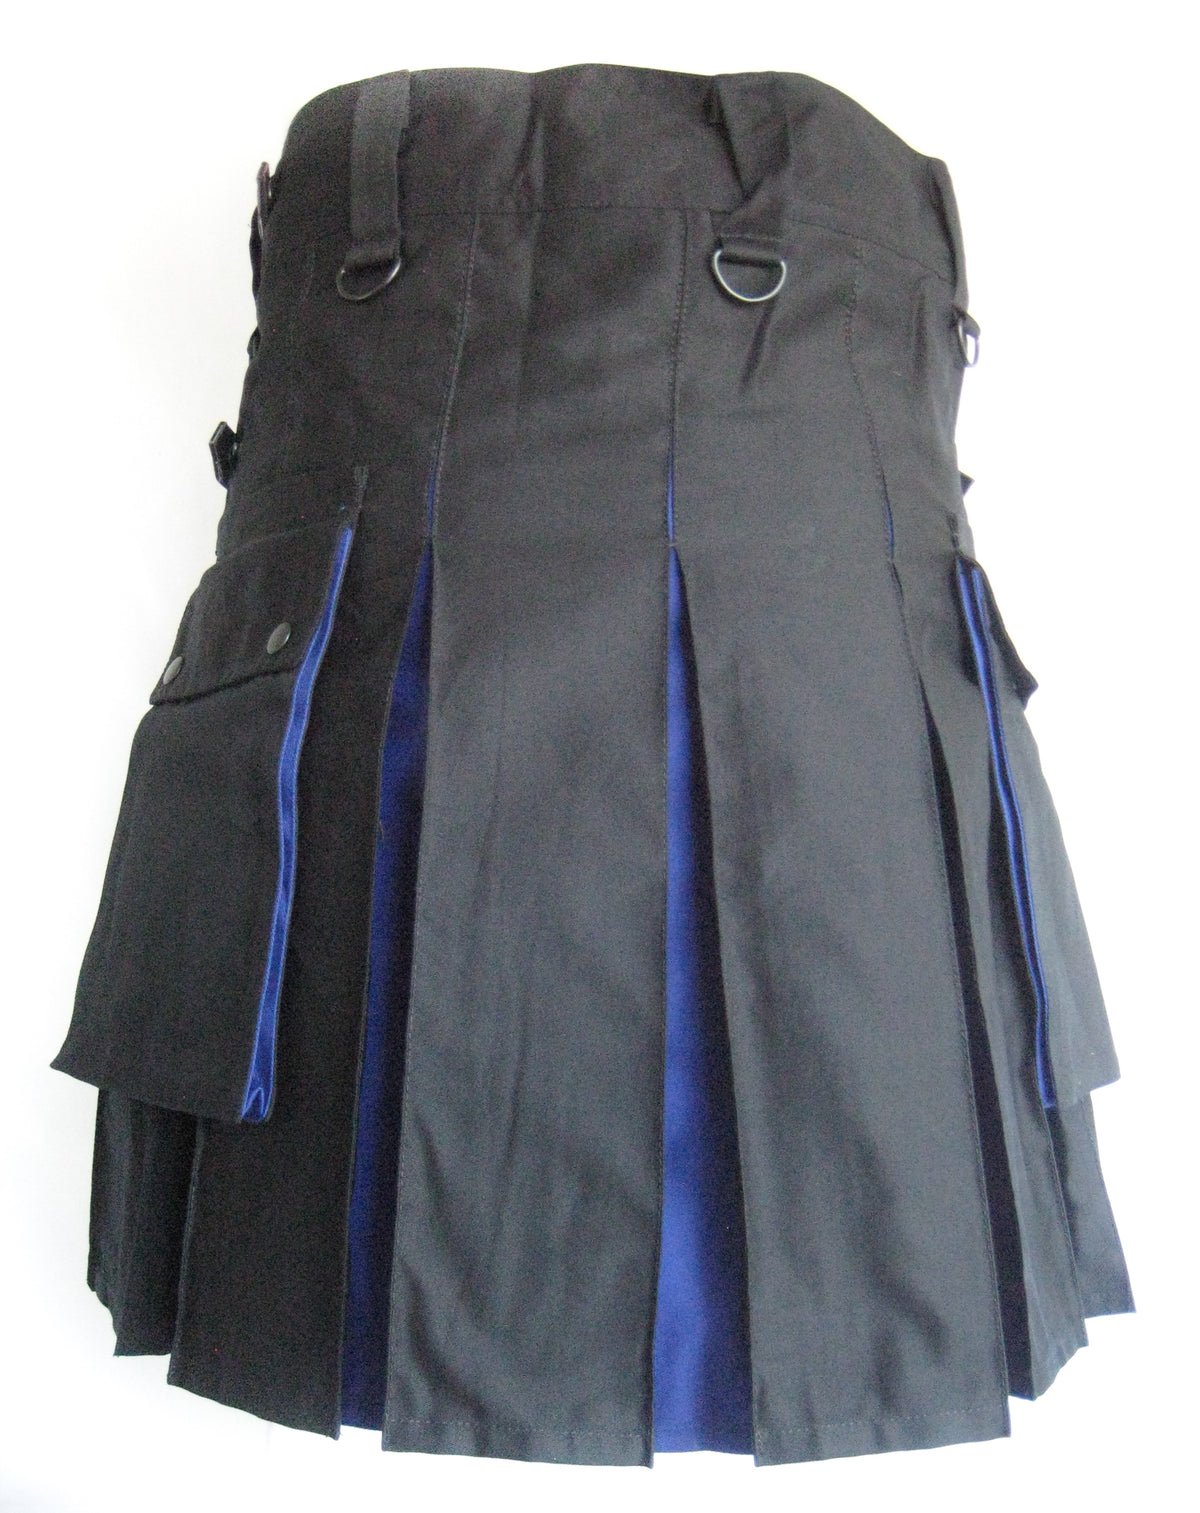 Men's Two-Tone Kilt - Black and Blue